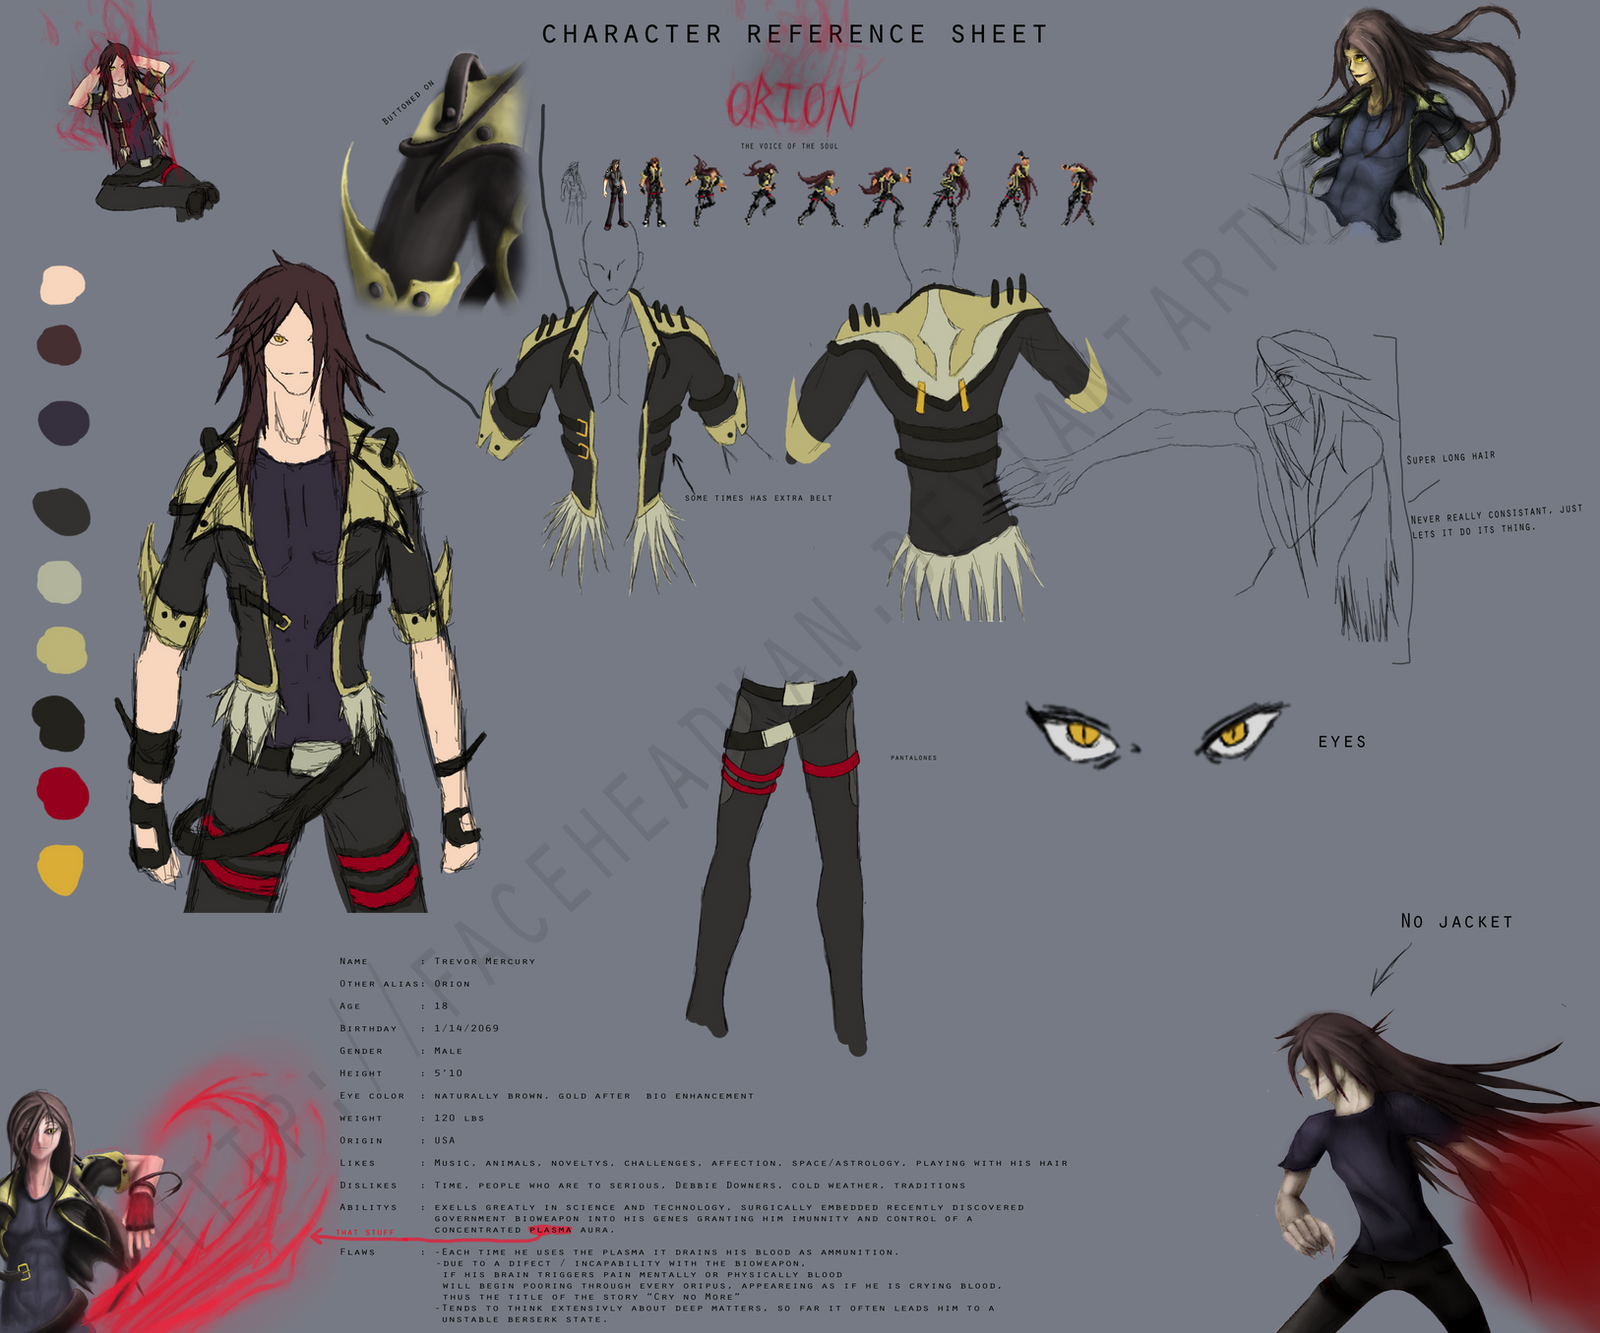 Character Design Deviantart : Character design reference sheet orion by faceheadman on